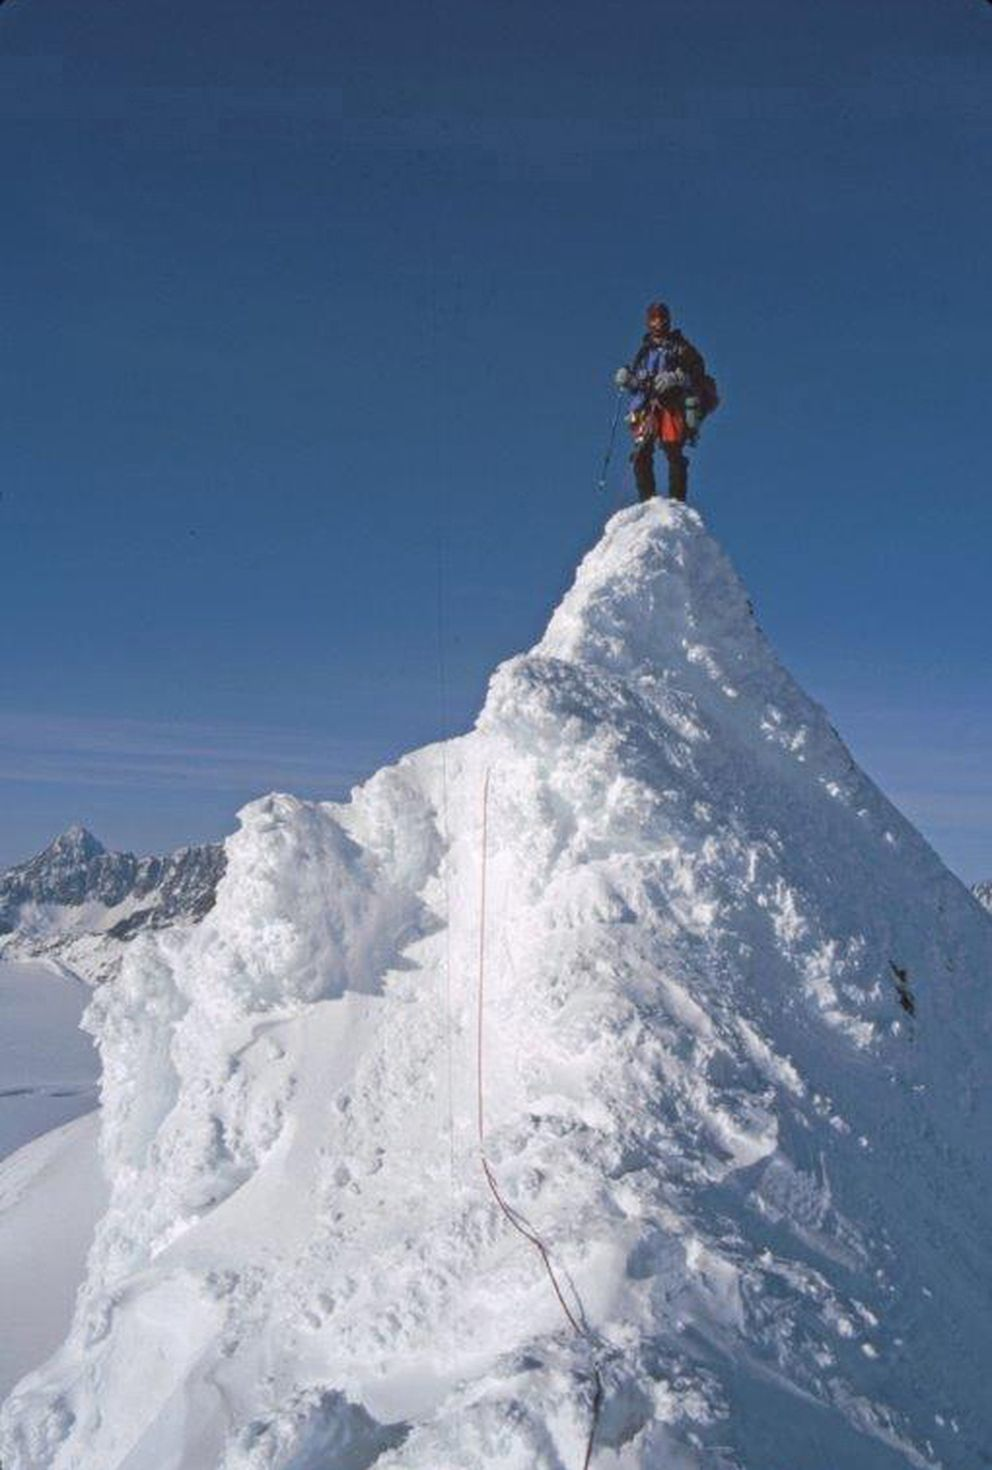 Wayne Todd on Whiteout Peak, along the Eklutna Traverse route, in 1997. (Photo by Kathy Still)